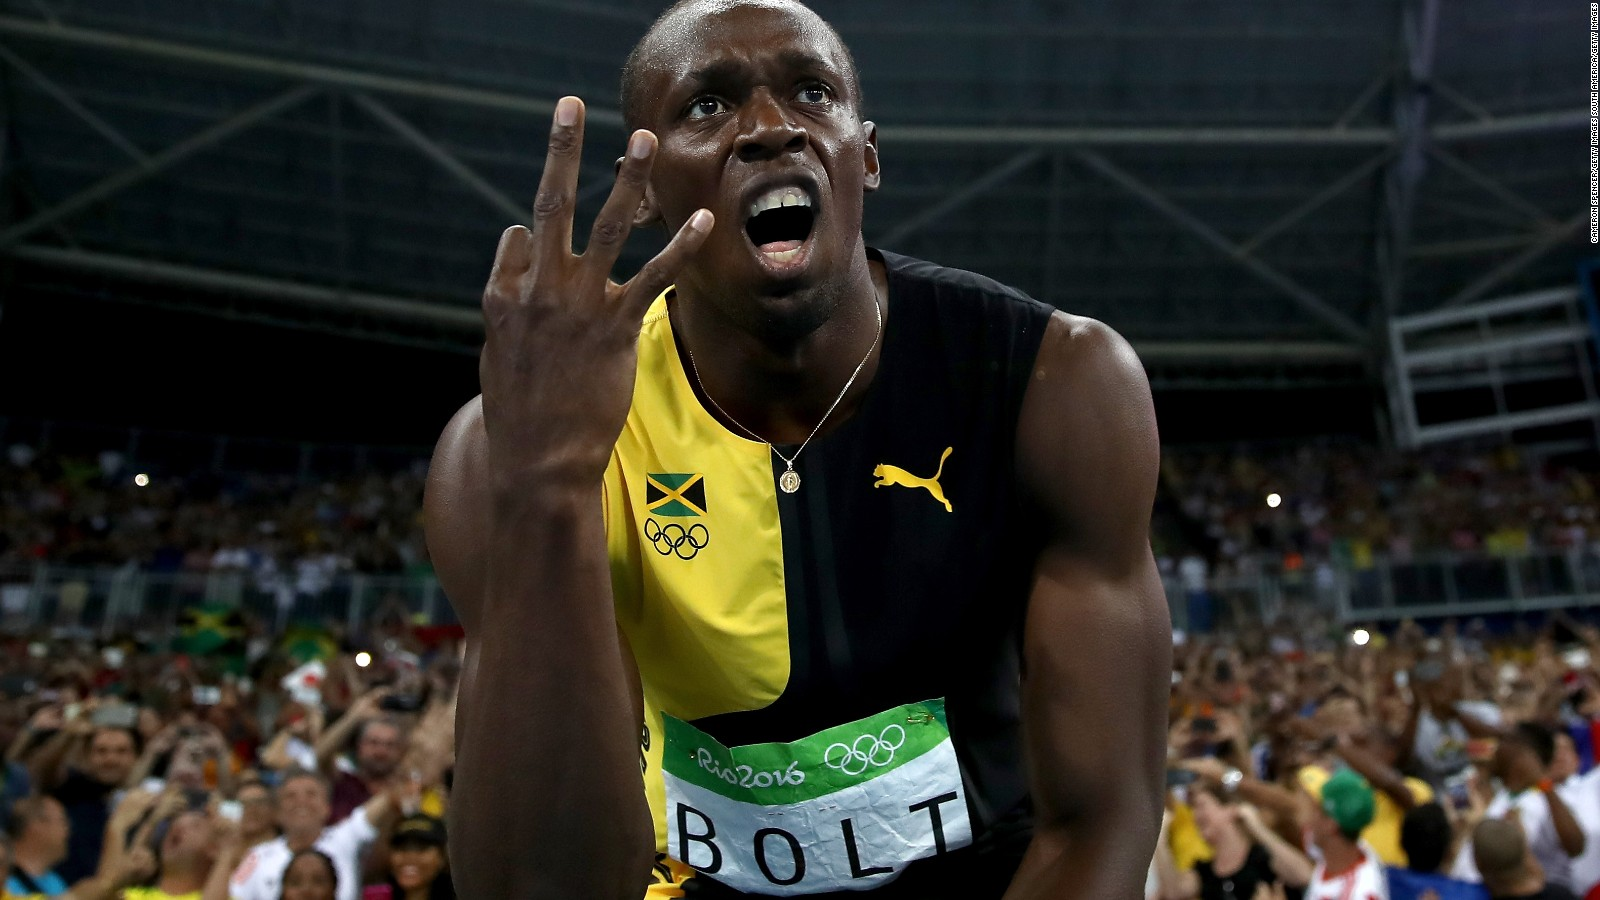 Usain Bolt No Hard Feelings After Losing Olympic Gold